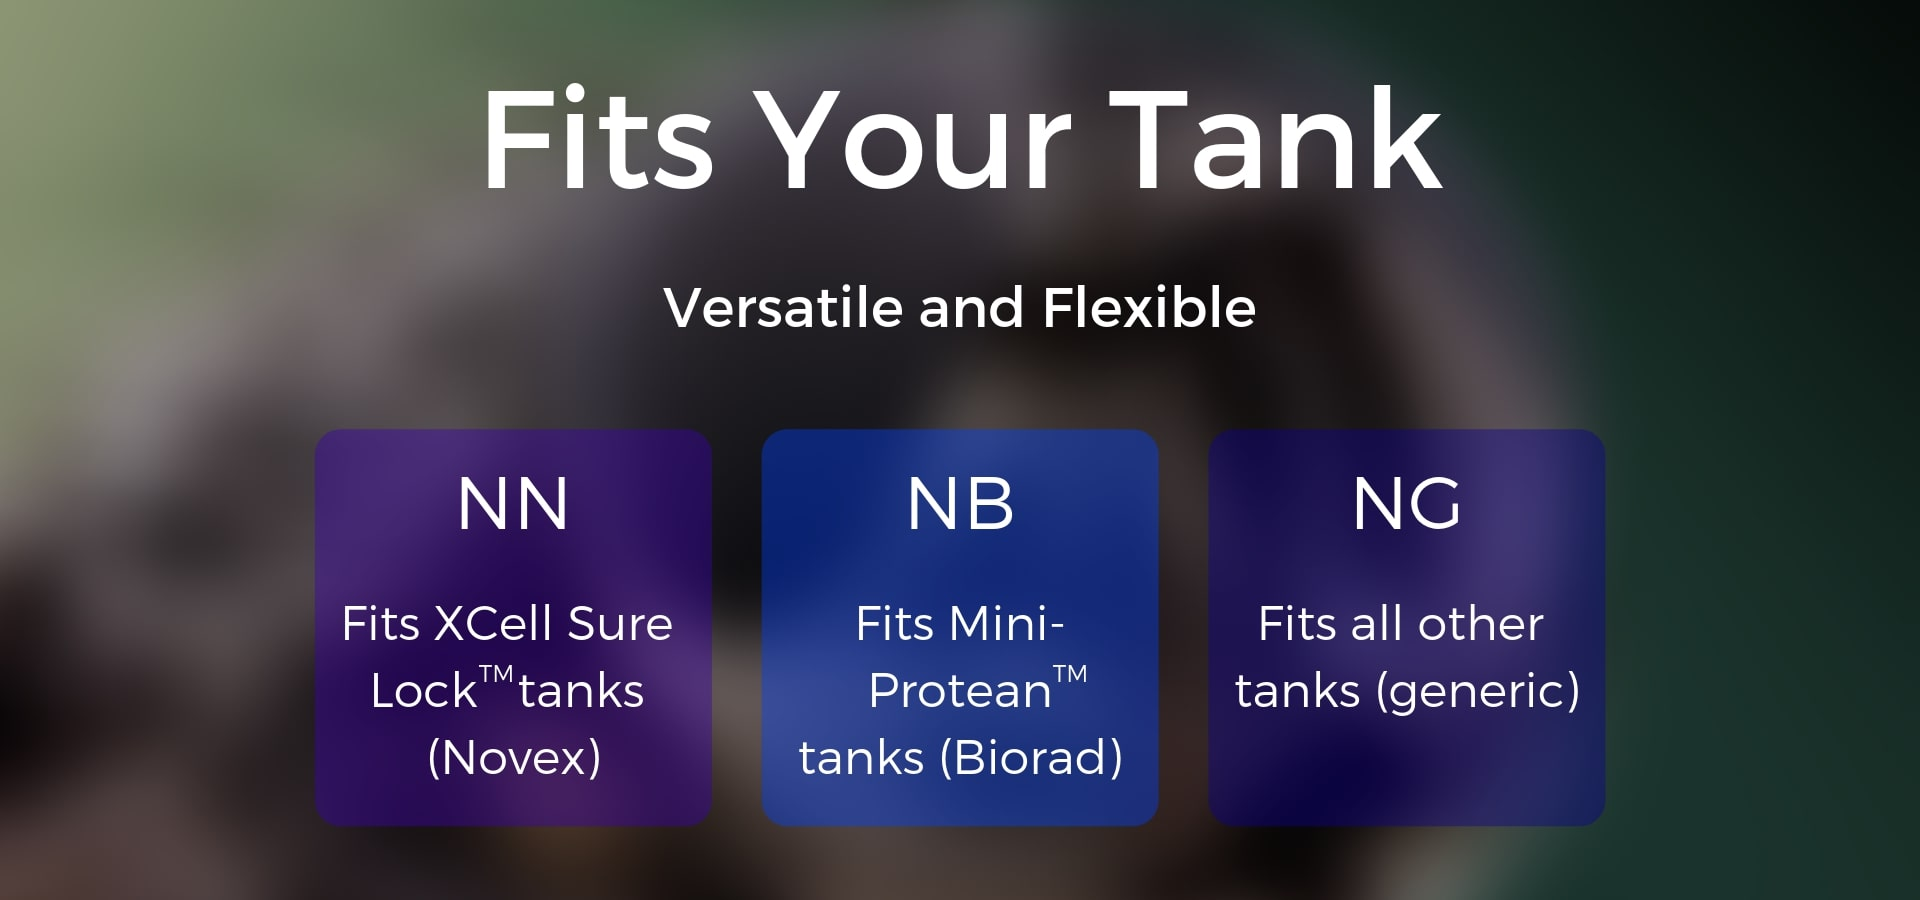 Precast Gel compatible with Bio-Rad, ThermoFisher, and most generic tanks